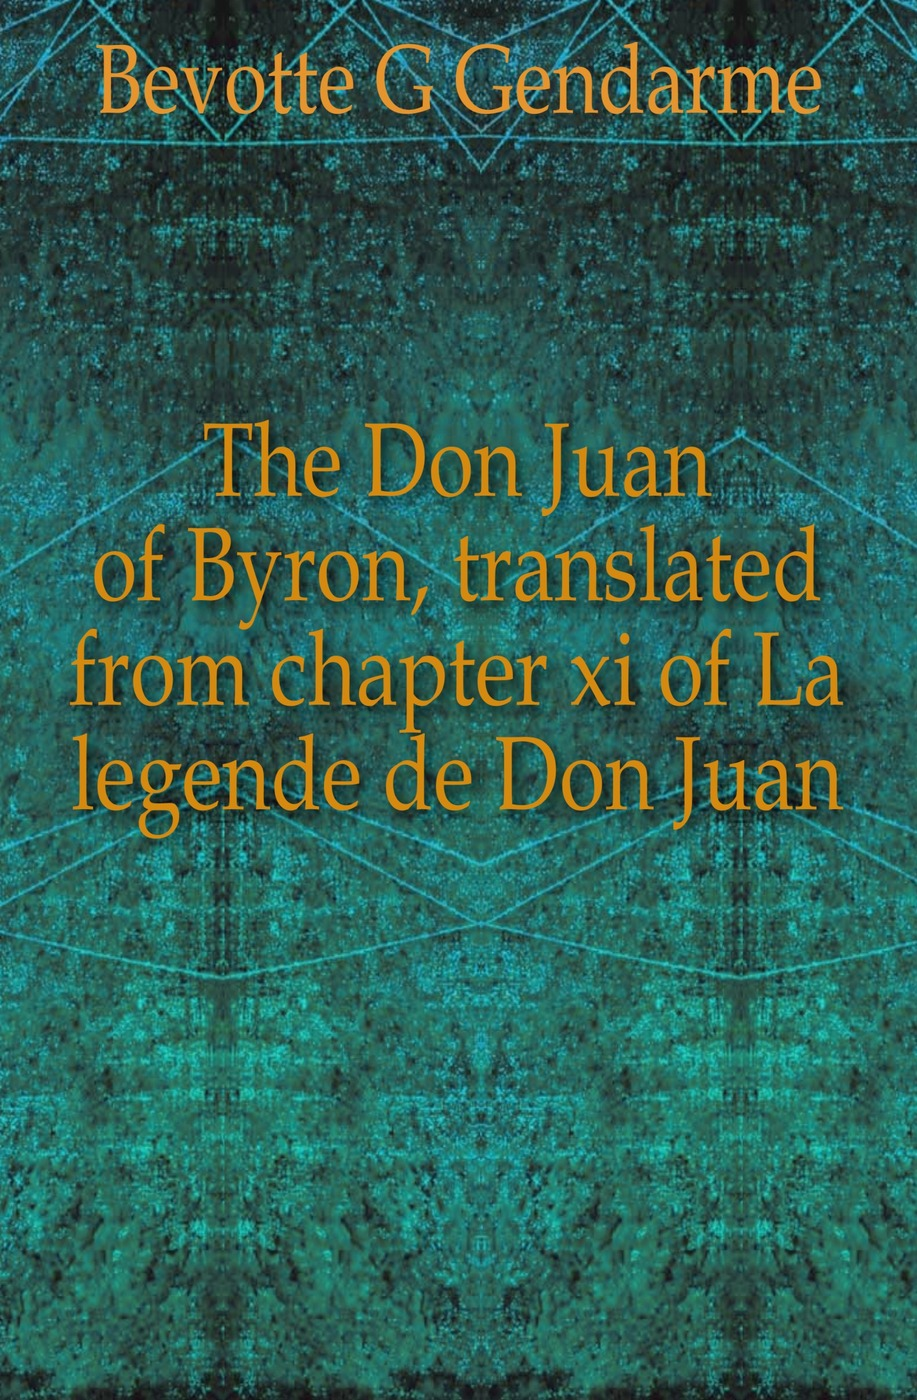 Bevotte G. Gendarme The Don Juan of Byron, translated from chapter xi of La legende de Don Juan